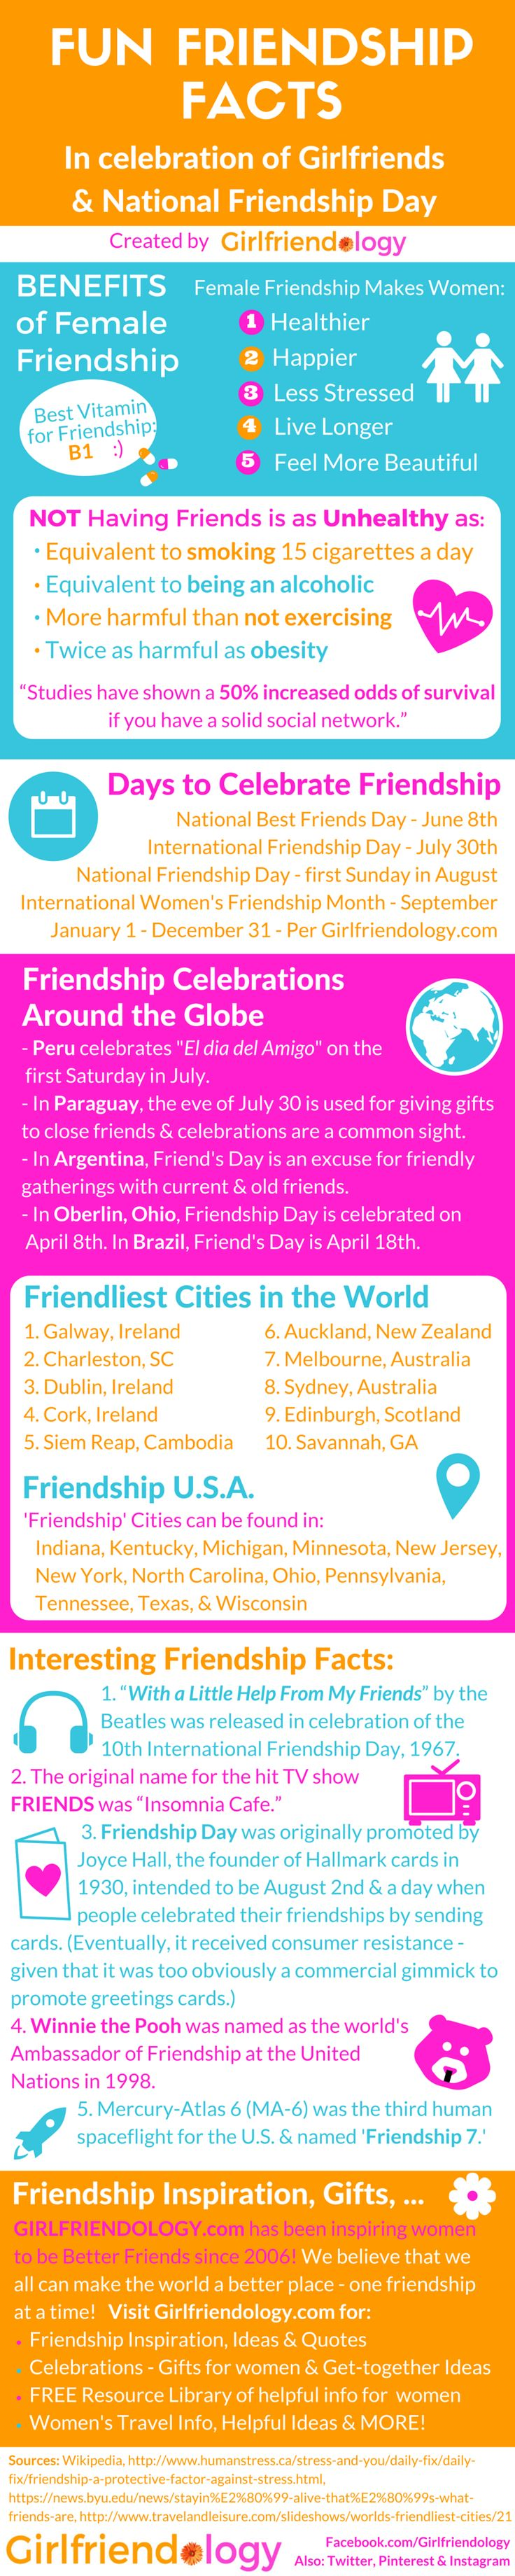 National Friendship Day Infographic, Best Friends Day - June 8th, Friendship Month